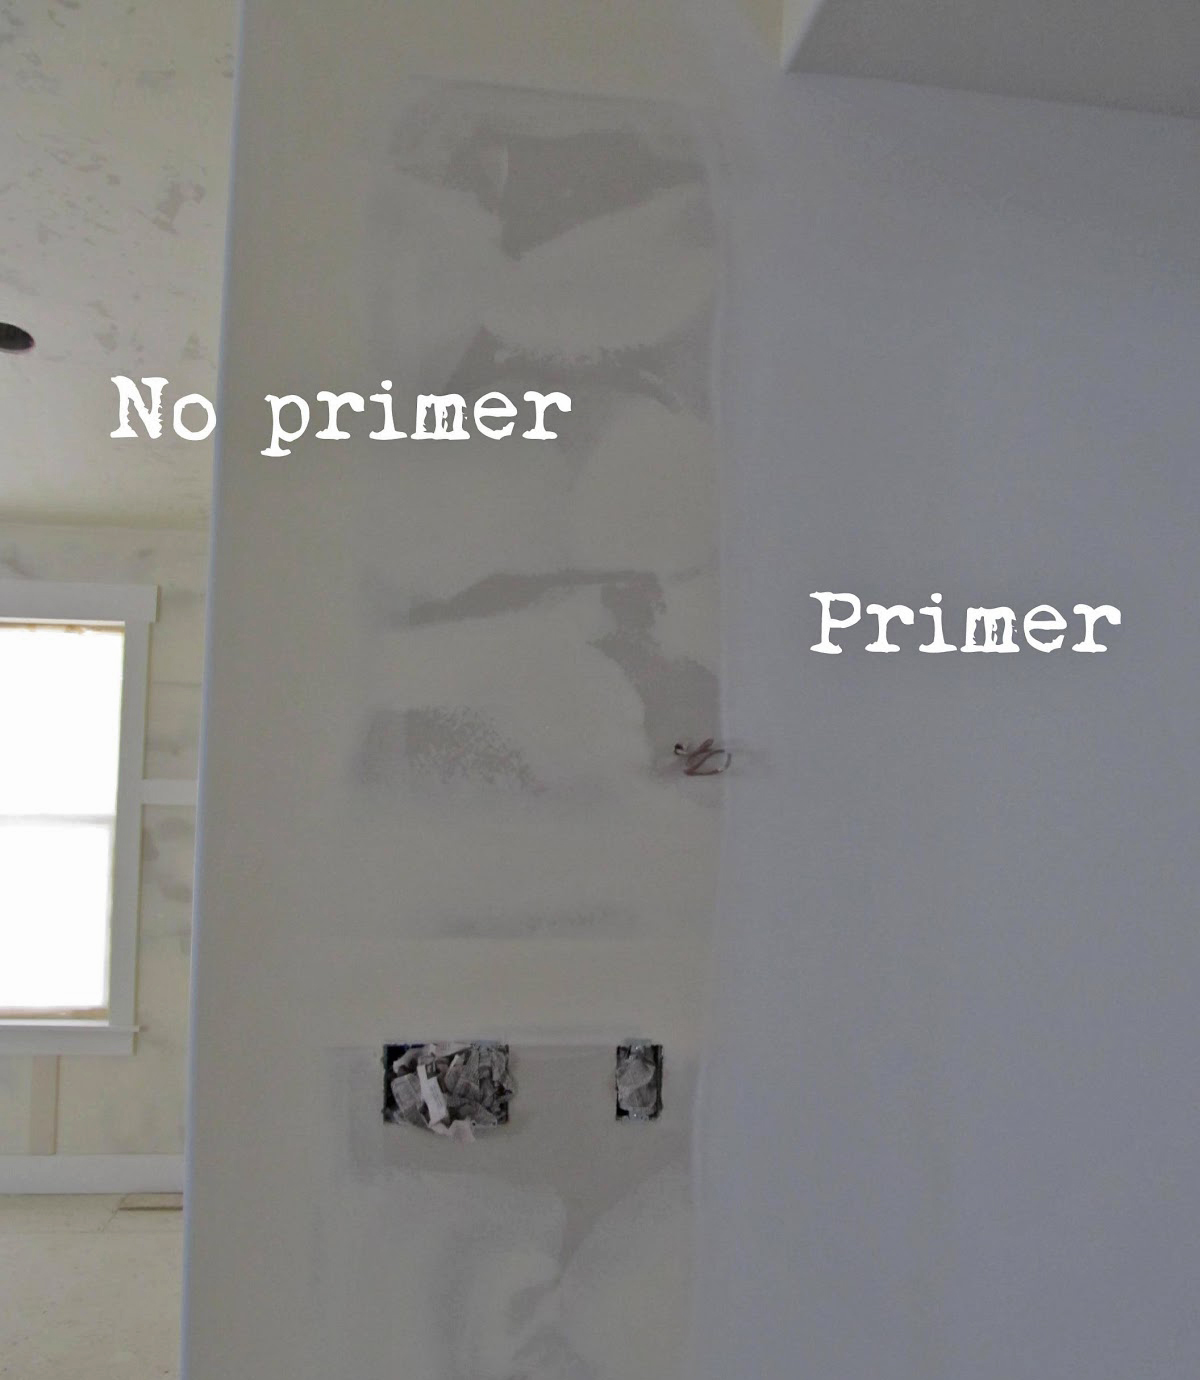 Primed vs. unprimed painting